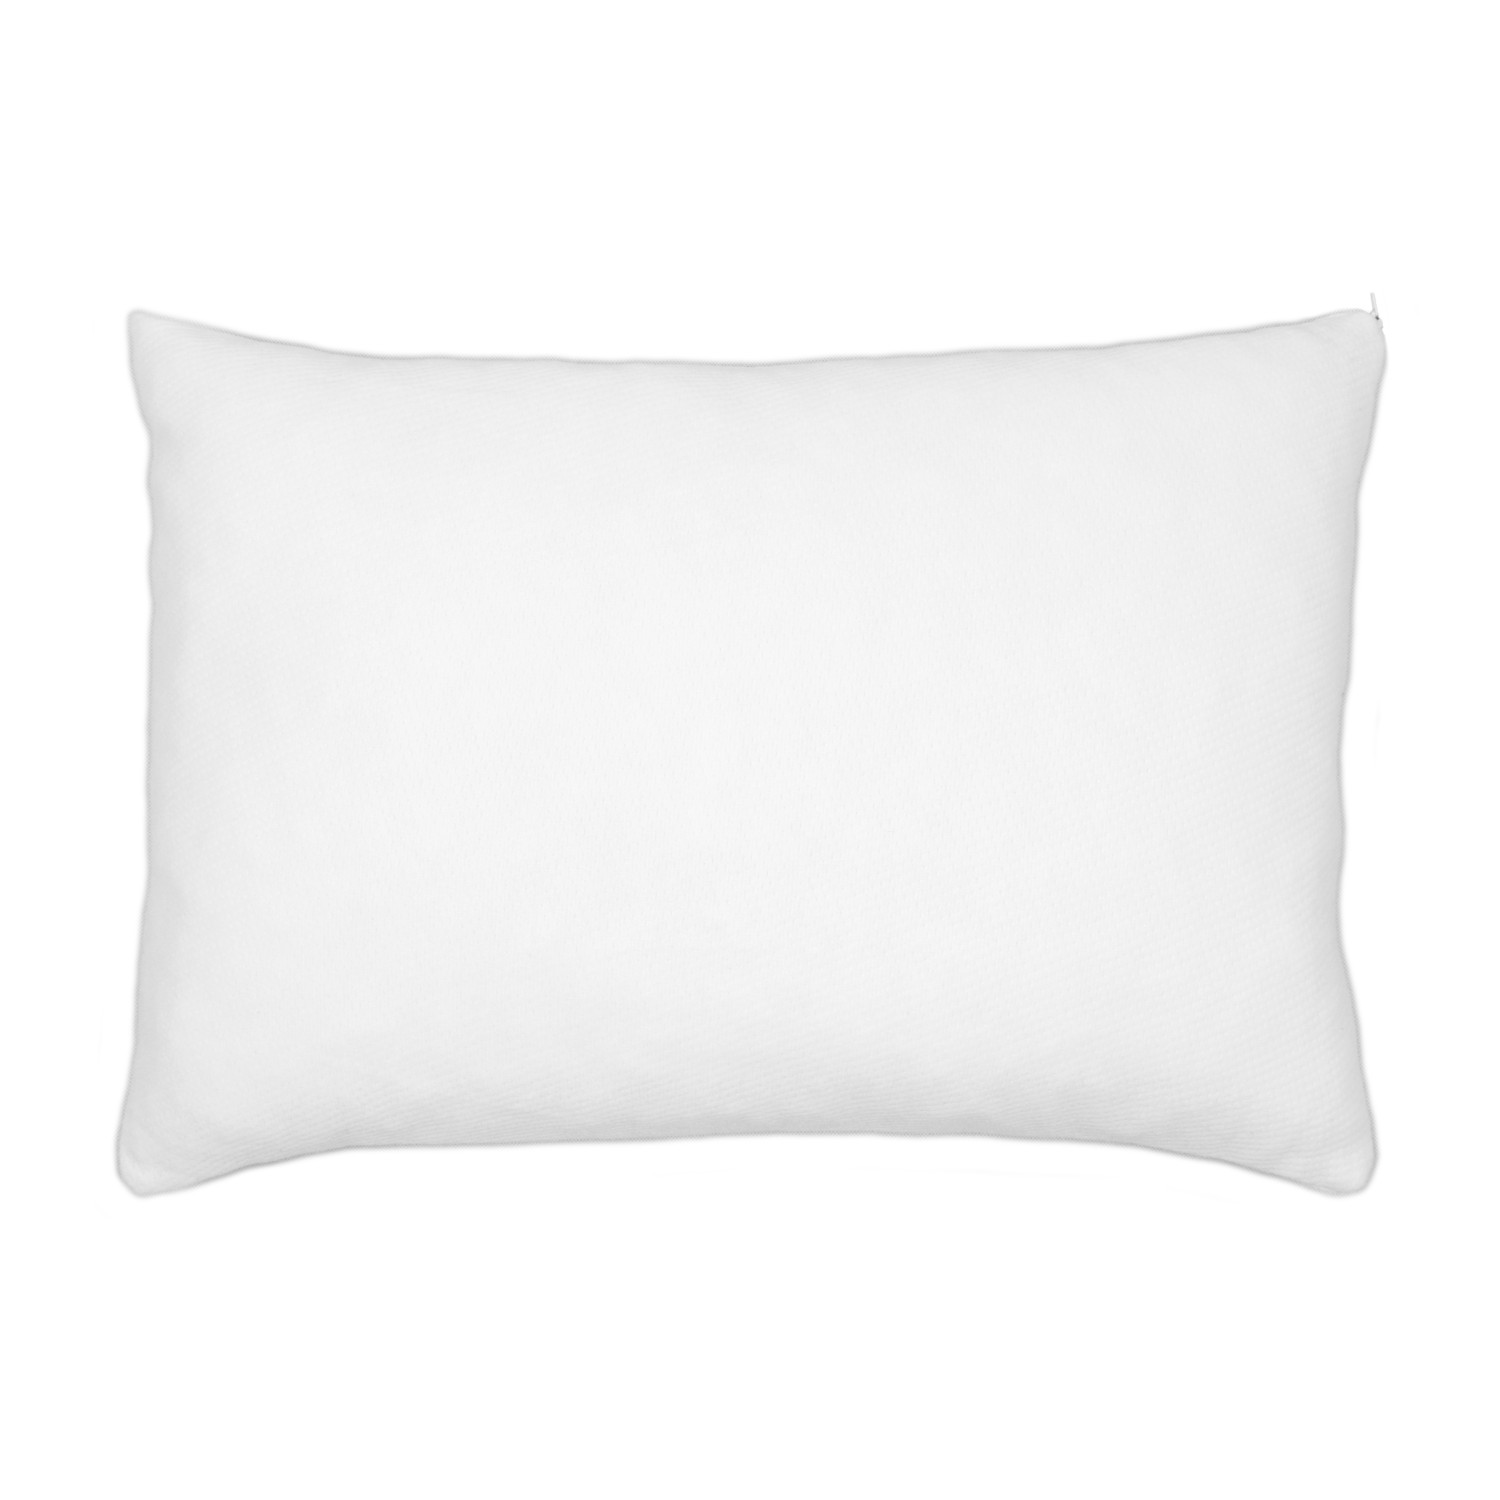 shredded memory foam pillow top